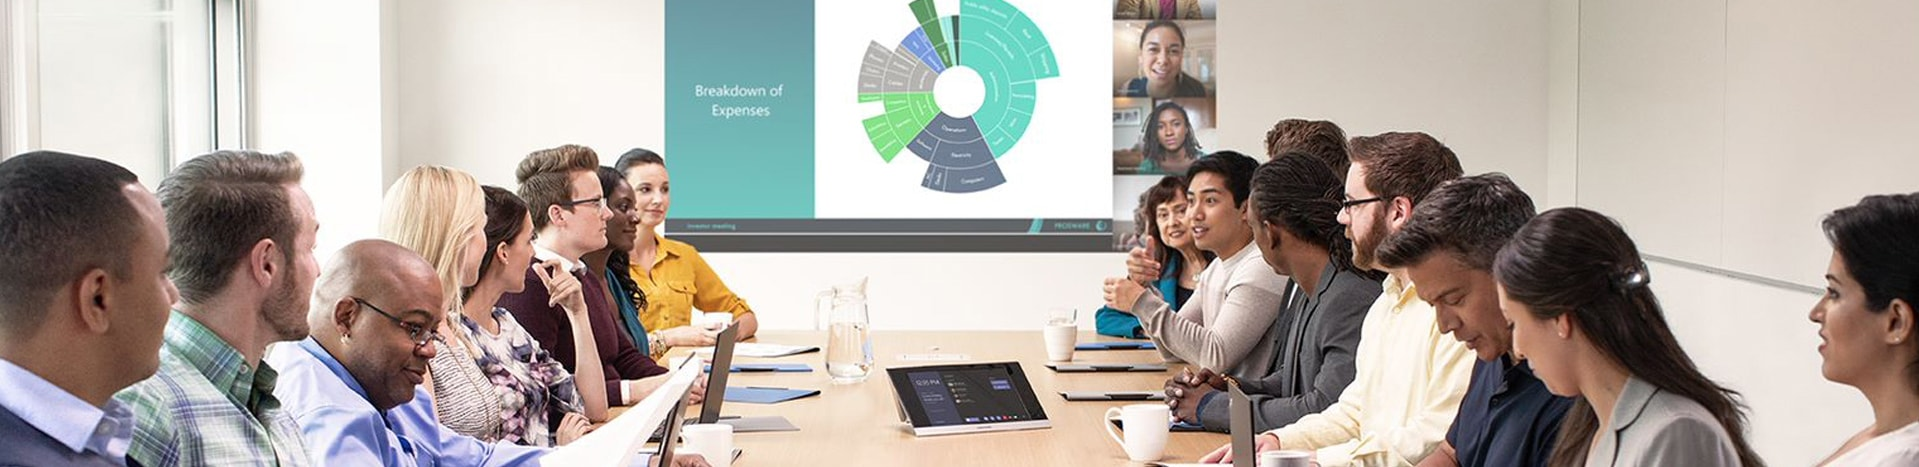 Photograph of a group of people meeting in a large conference room using a Teams device